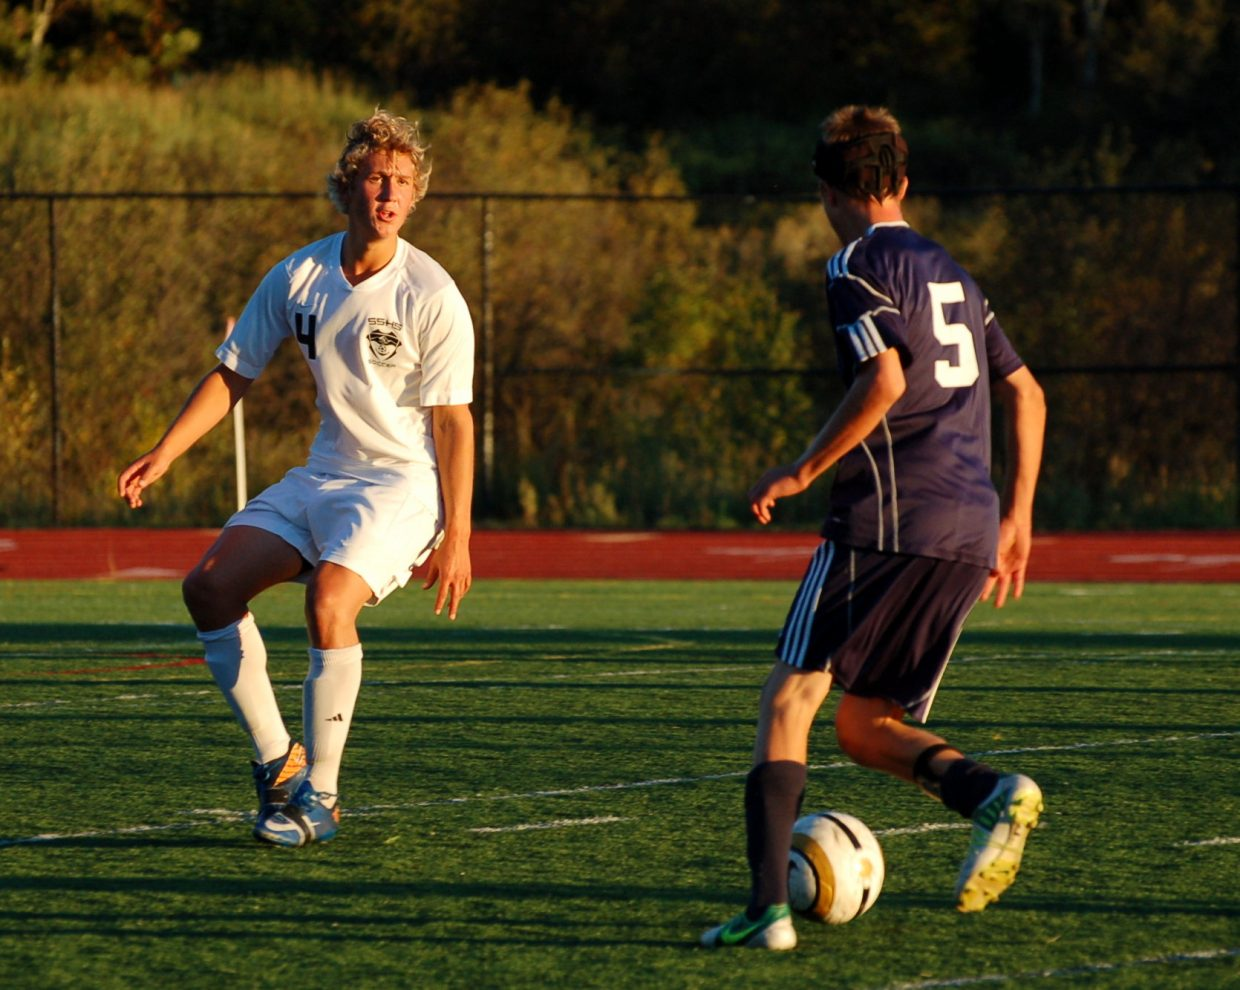 Ryan Walker looks to steal the ball for the Sailors.